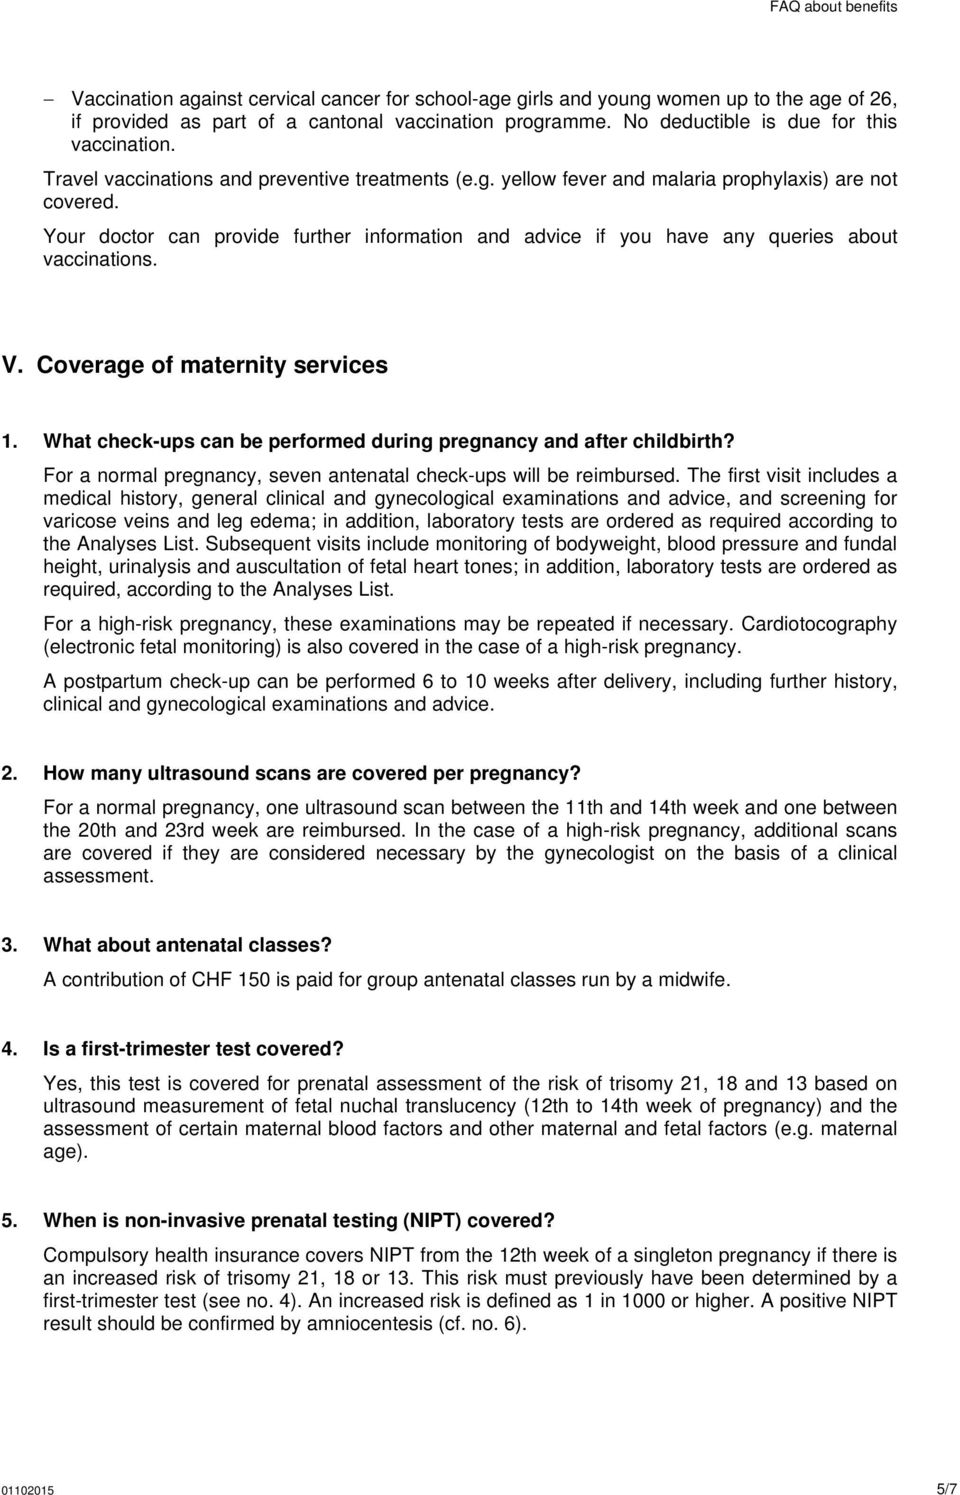 Frequently asked questions (FAQ) about benefits - PDF